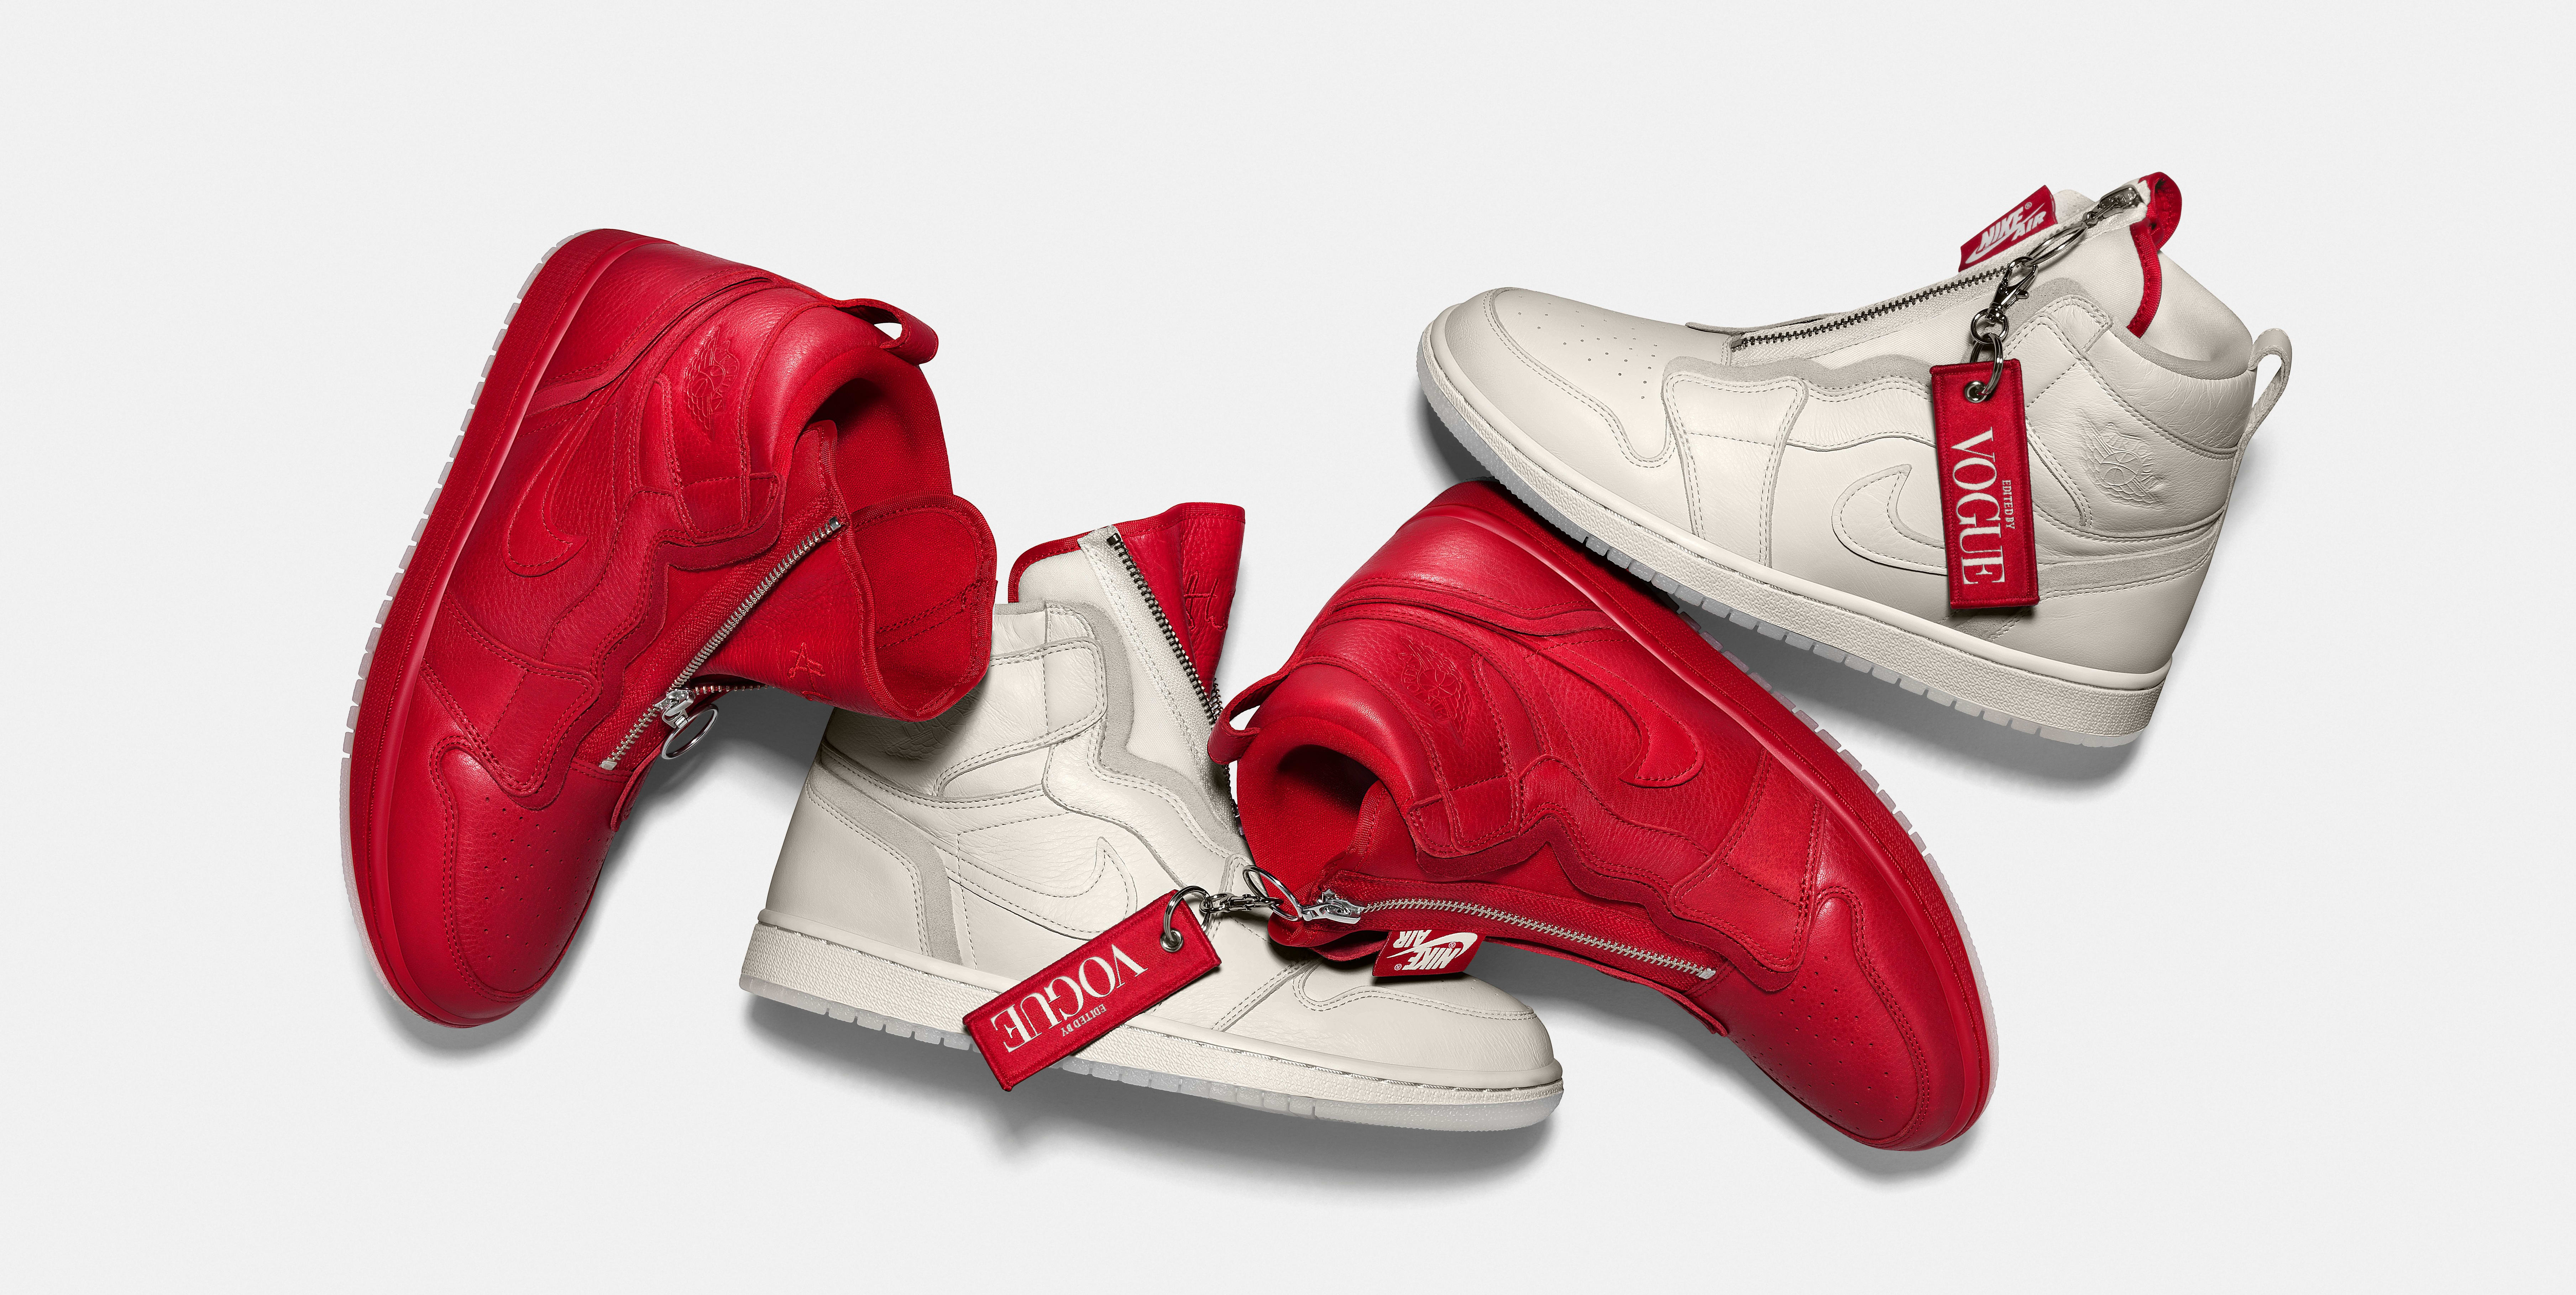 Vogue x Air Jordan 1 Zip AWOK 'Sail' and 'University Red'